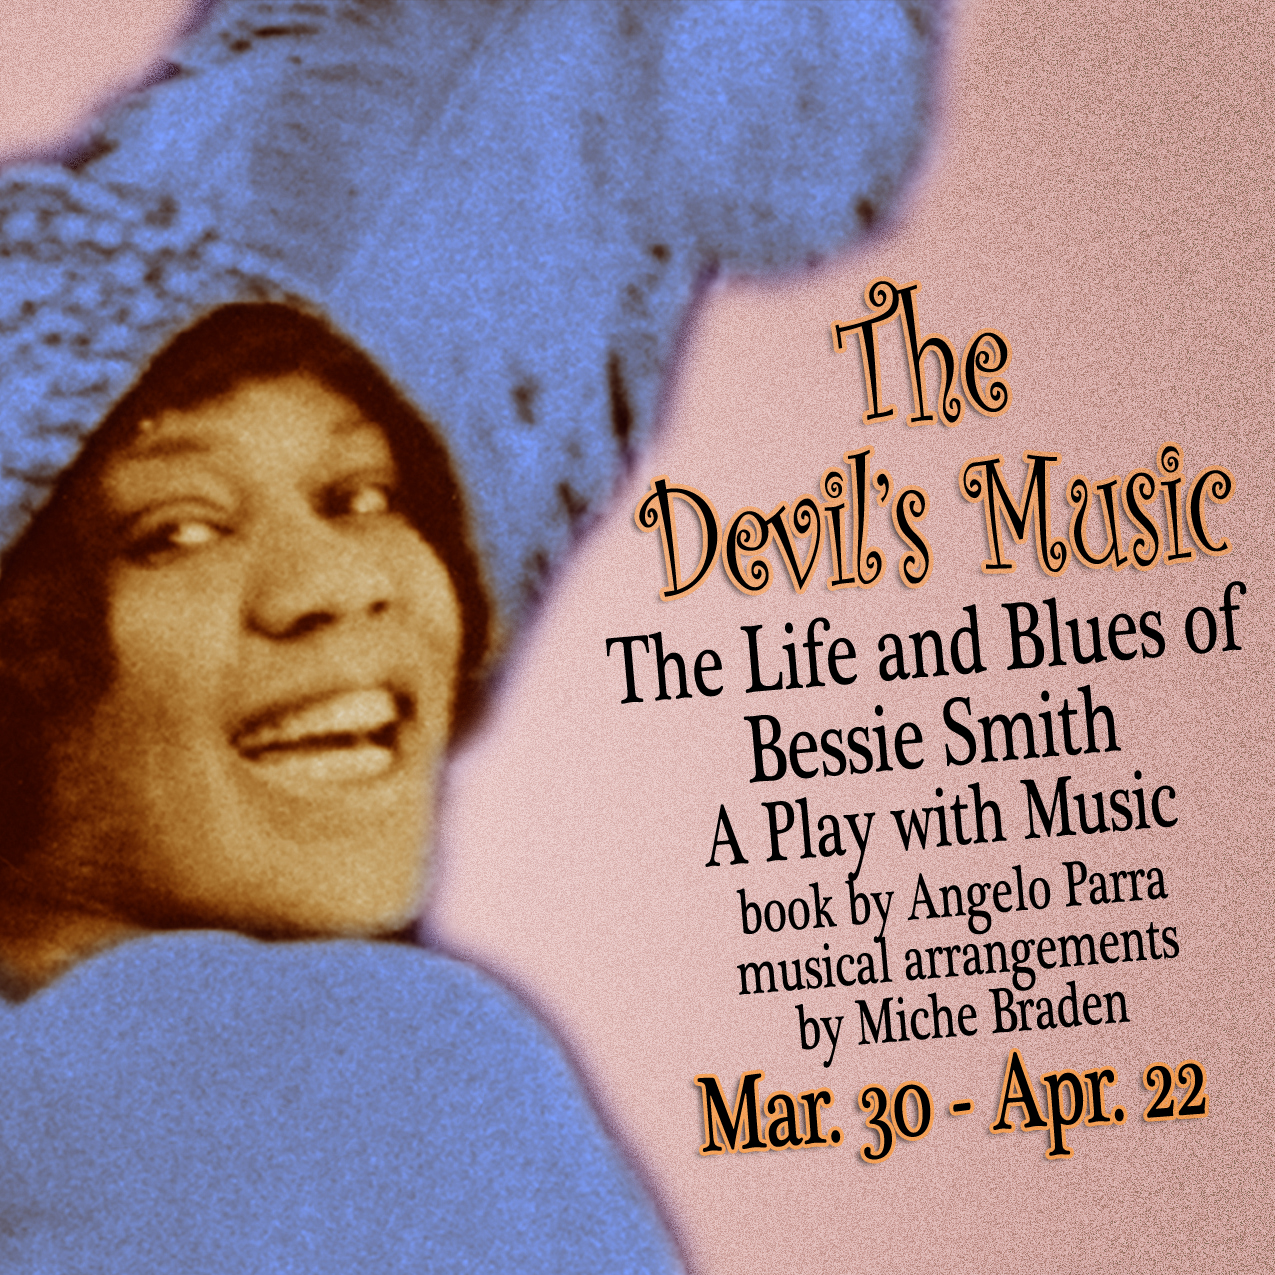 the life of bessie smith The devil ' s music: the life & blues of bessie smith by angelo parra | conceived and directed by joe brancato musical arrangements by and starring miche braden.